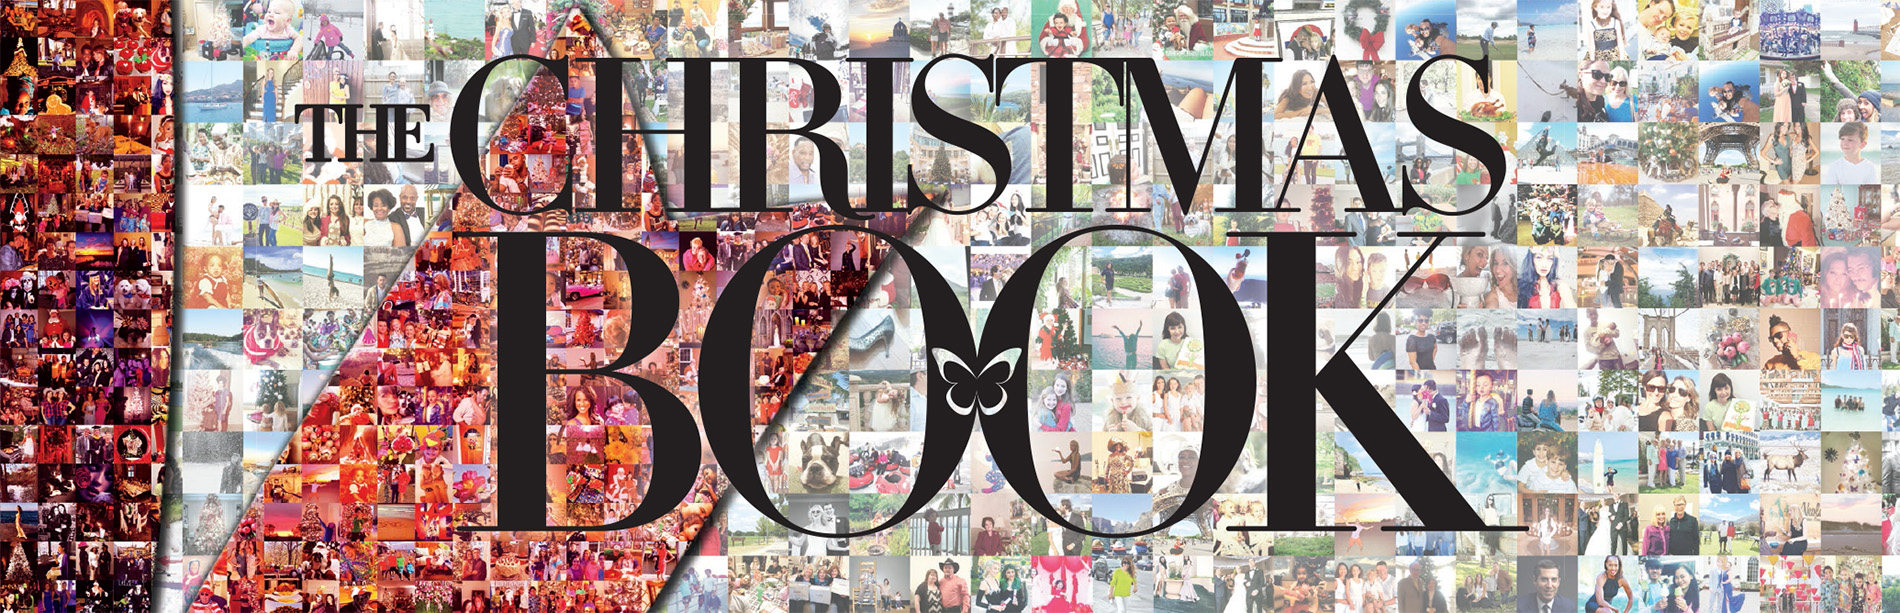 Neiman Marcus Christmas Book.Neiman Marcus Presents The 91st Edition Of Iconic Christmas Book